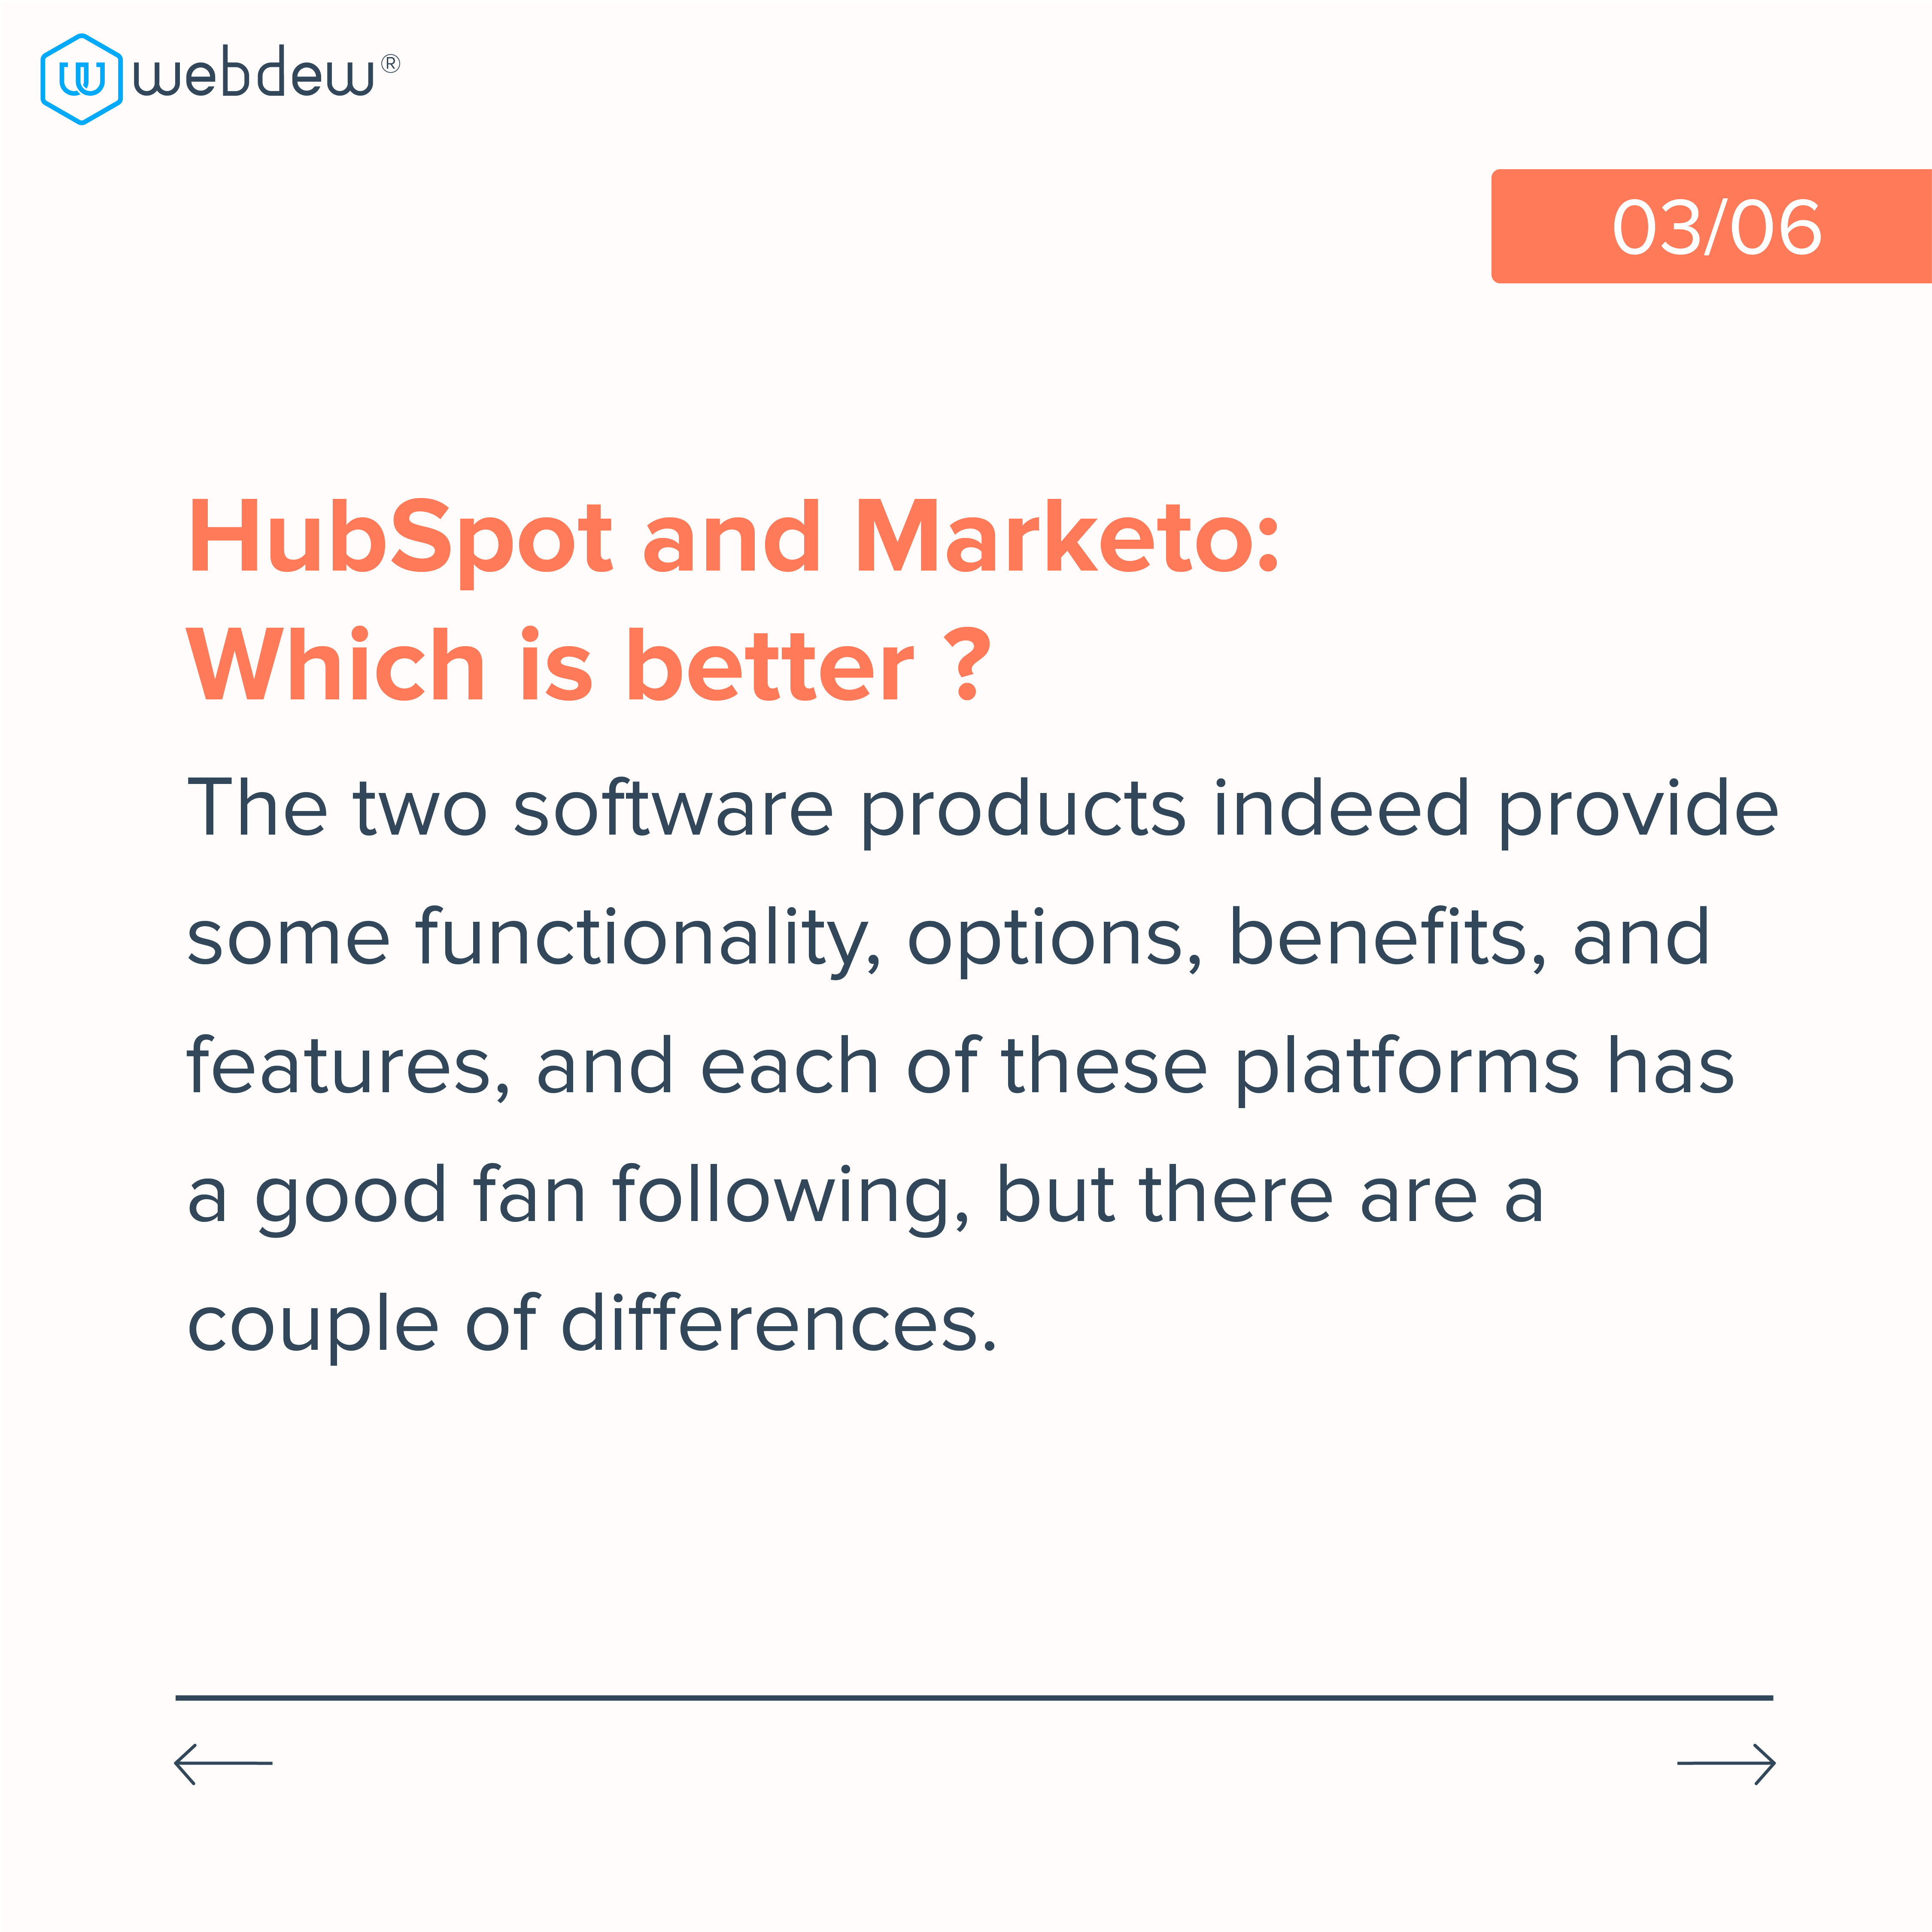 3. hubspot and marketo which is better